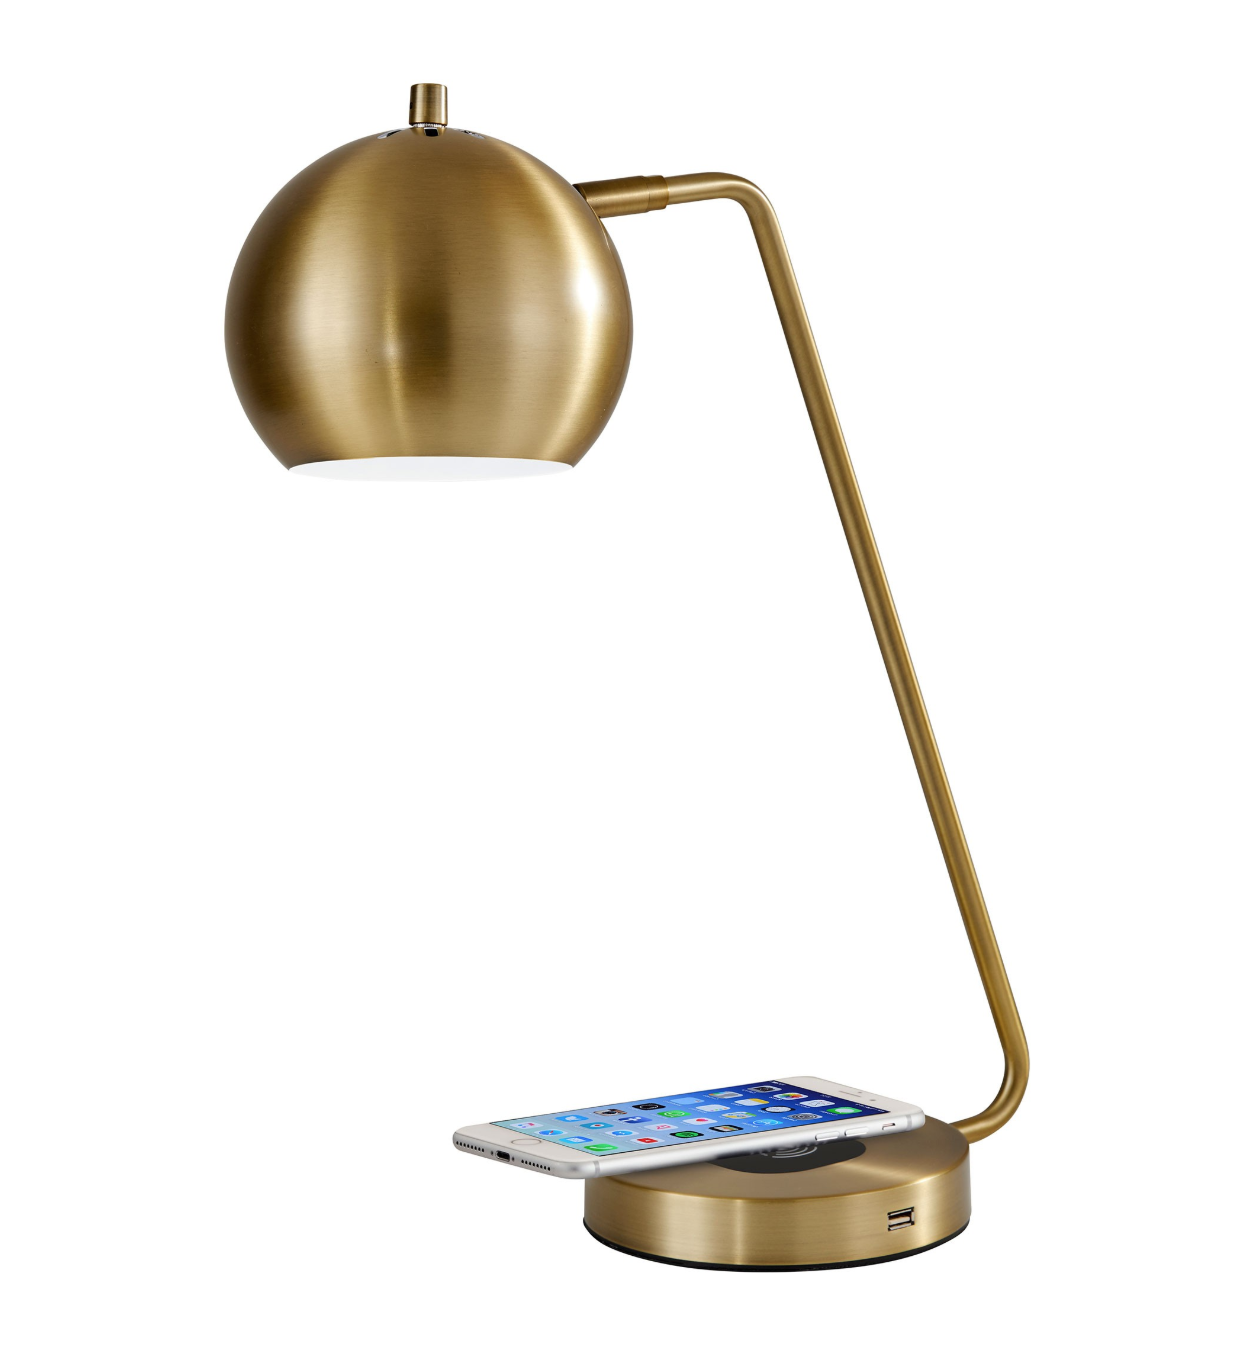 Emerson Charge Desk Lamp